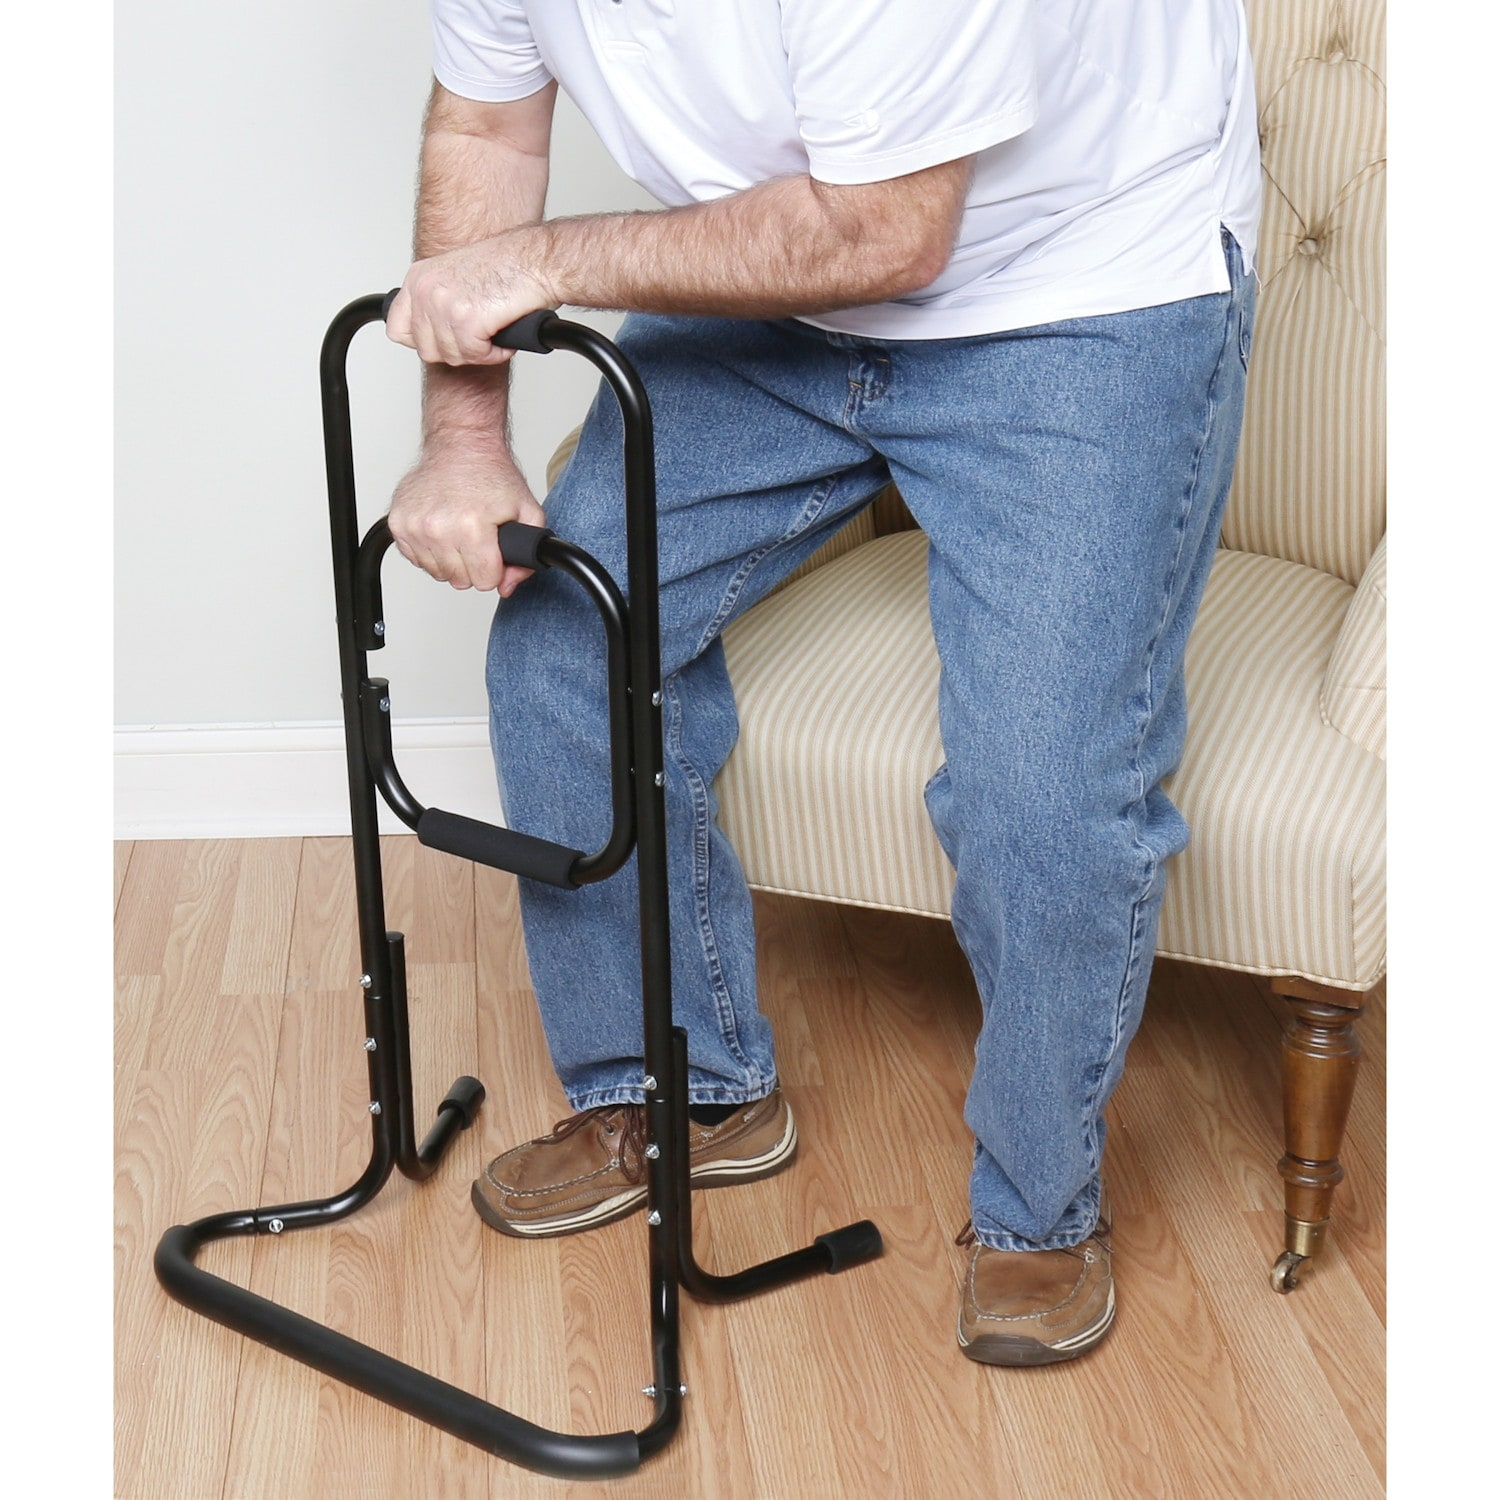 Shop Bandwagon Portable Chair Assist - Helps You Rise from Seated ...